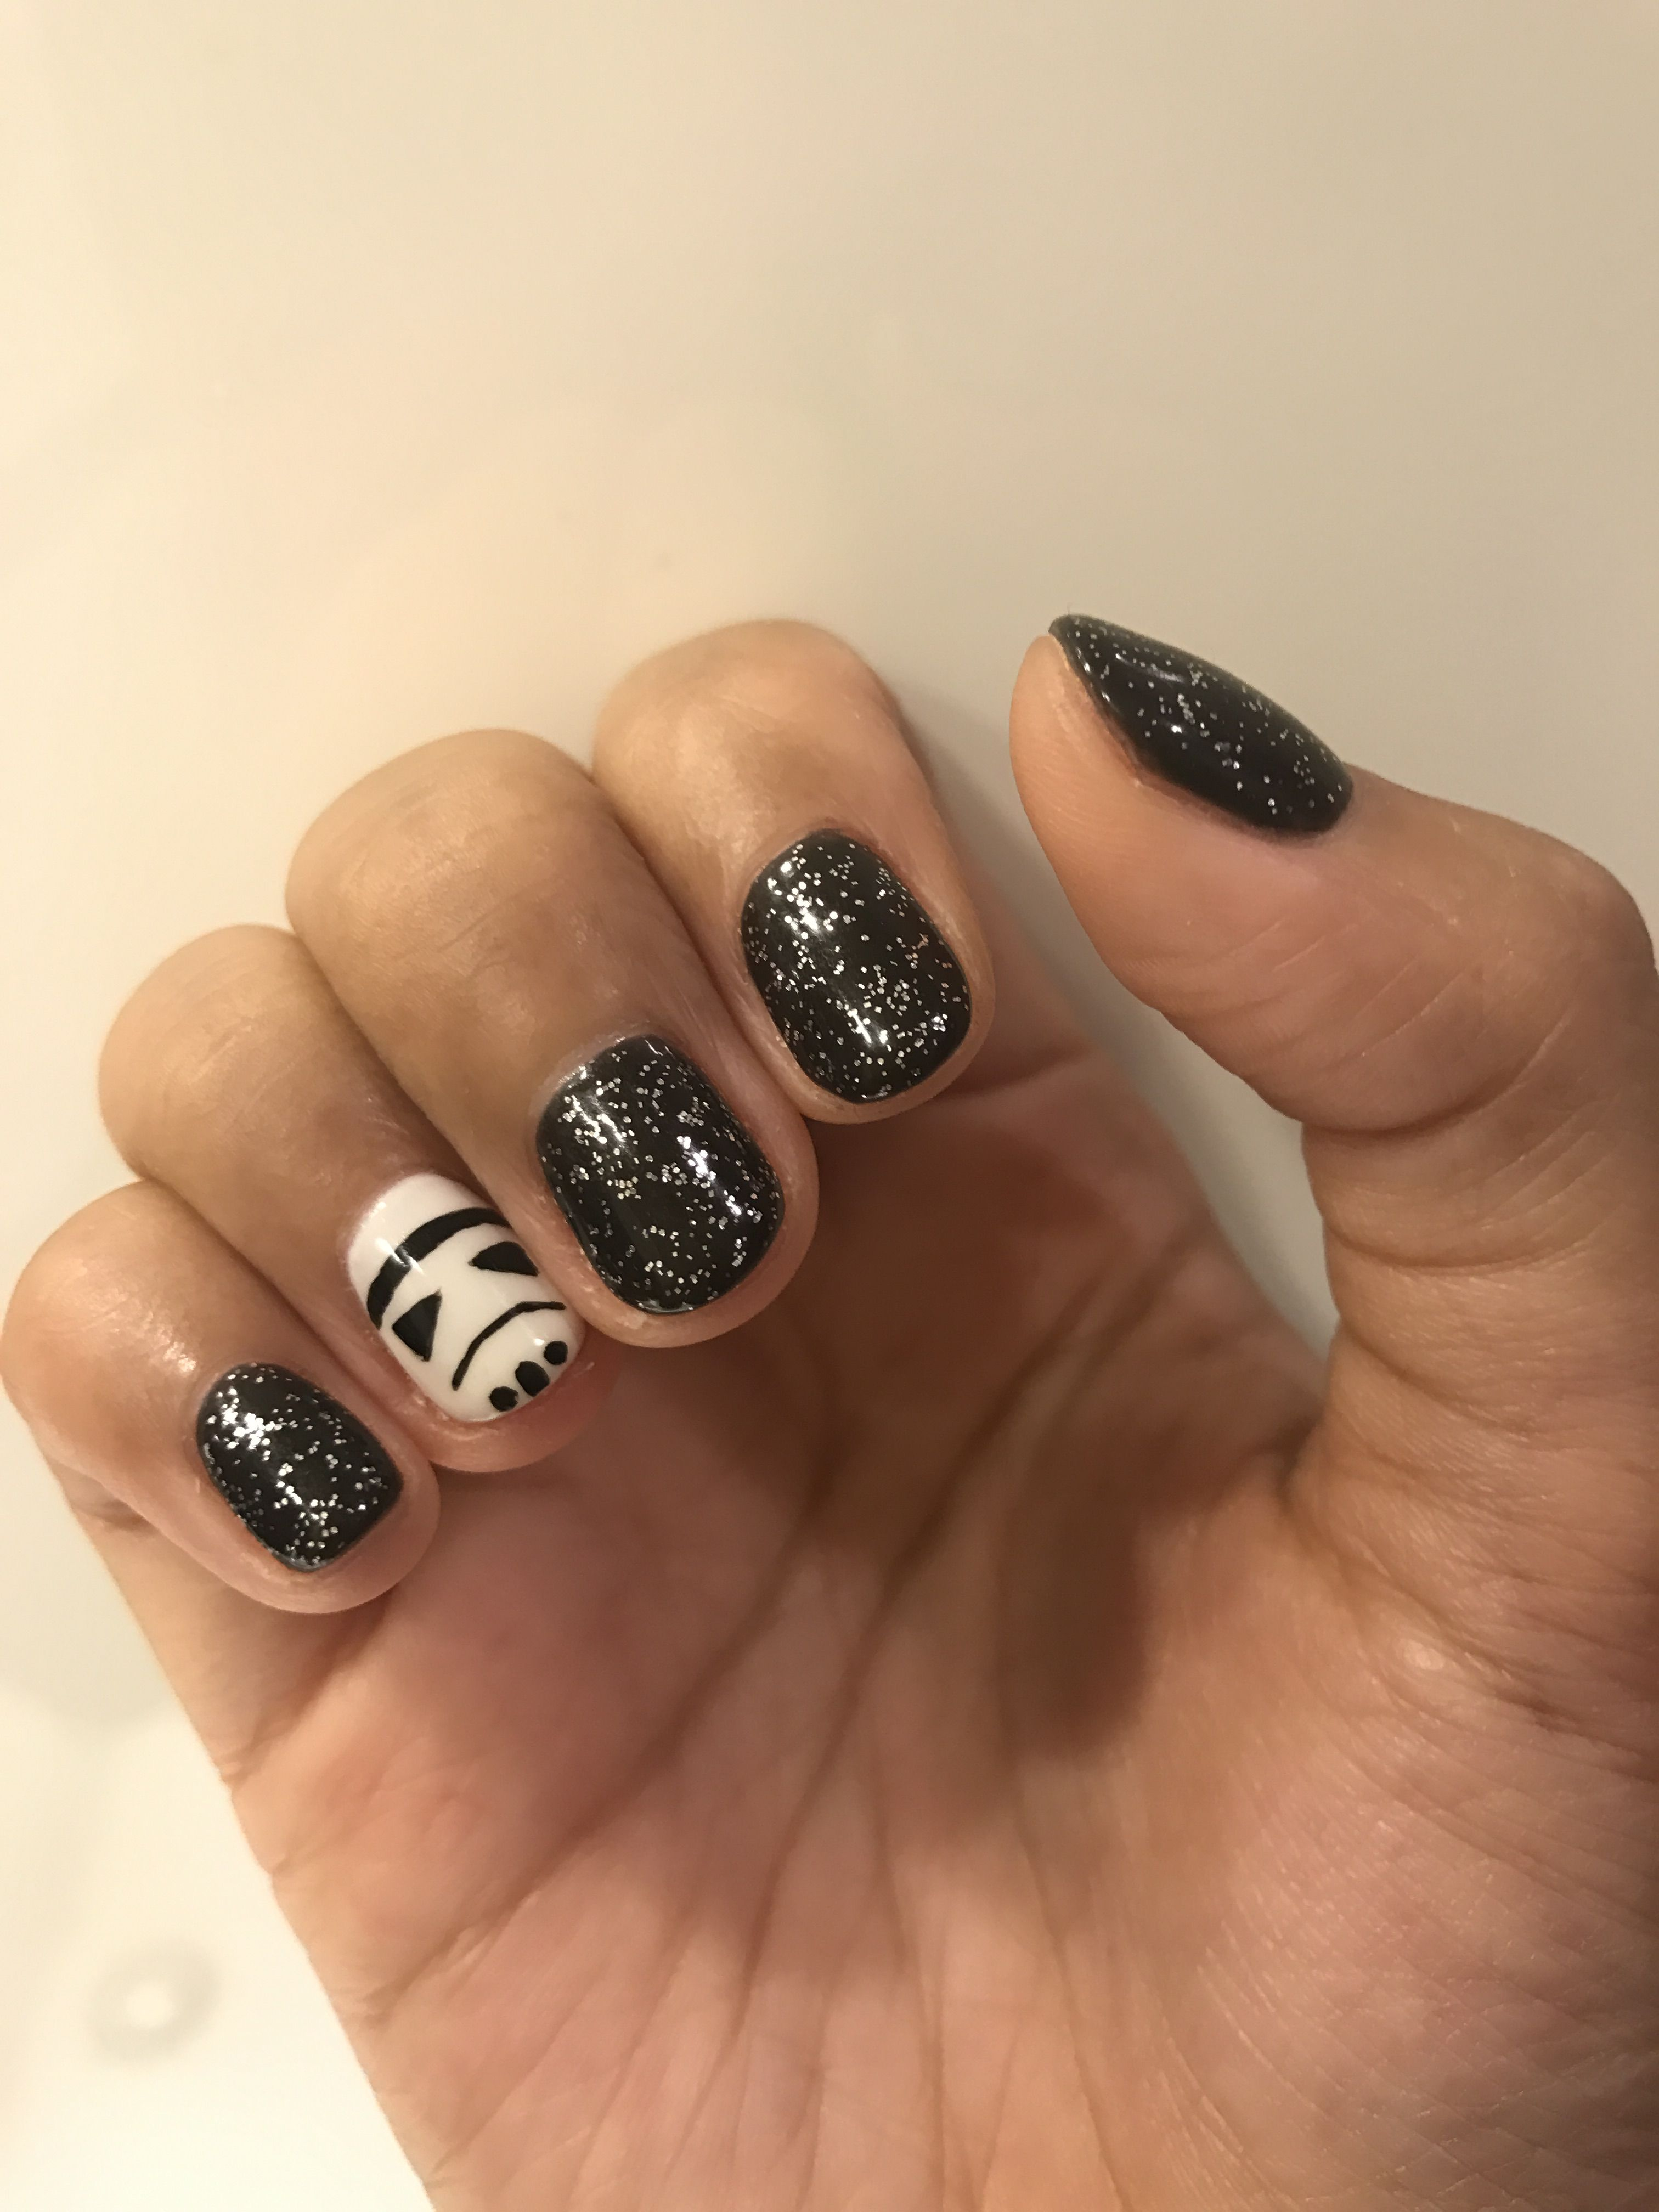 Star Wars Stormtrooper In Galaxy Simple Nail Art From Pinterest Star Wars Nails Trendy Nails Nails